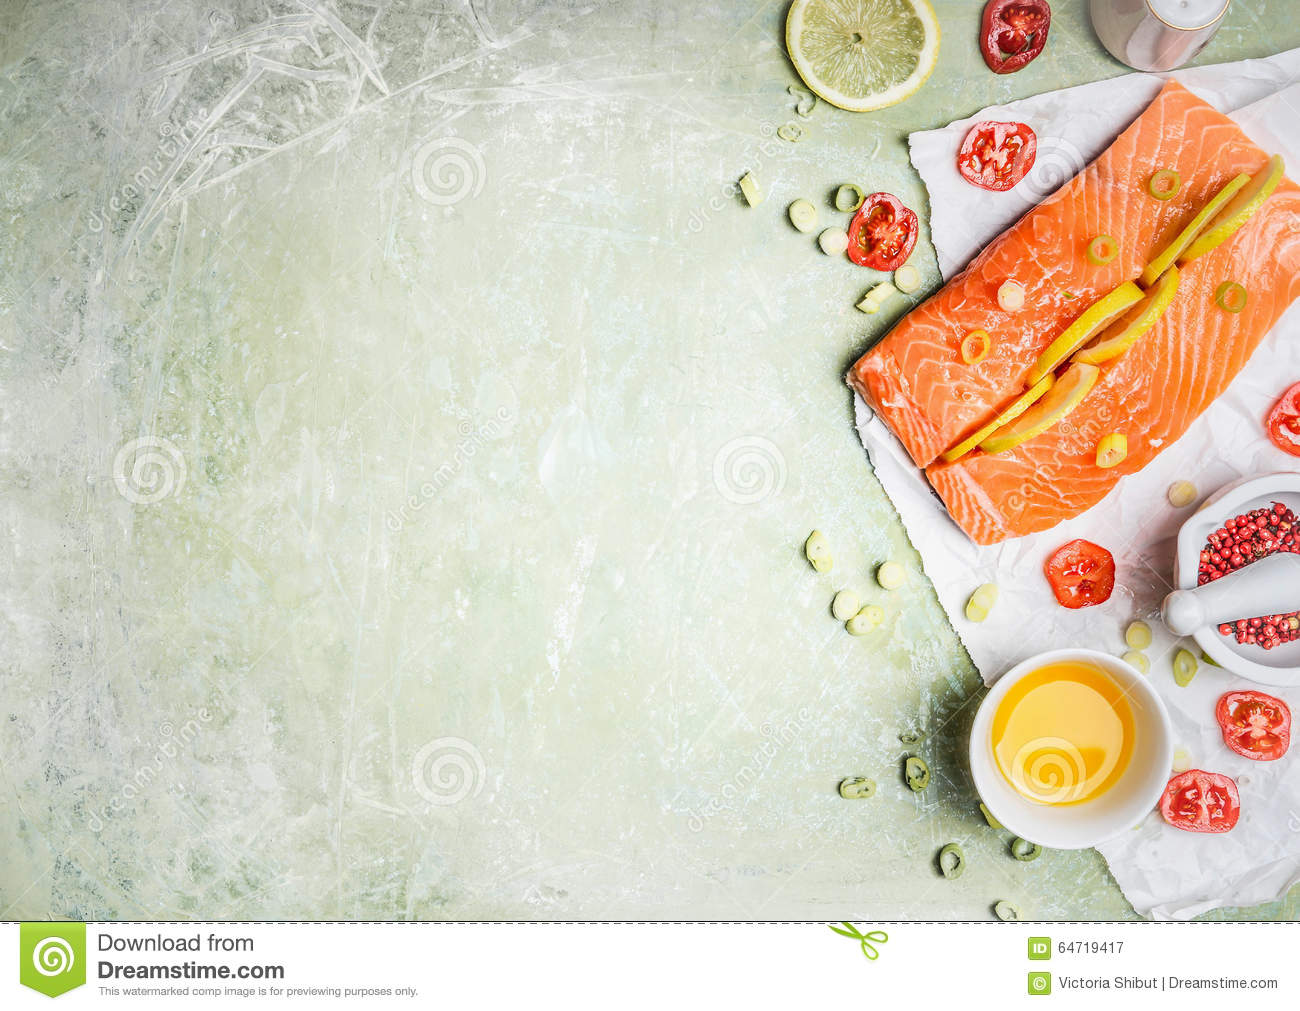 Portion Of Fresh Salmon Fillet With Lemon Slices, Oil And Ingredients For  Cooking On Light Wooden Background, Top View, Place For Text. Healthy Food  Or Diet ...